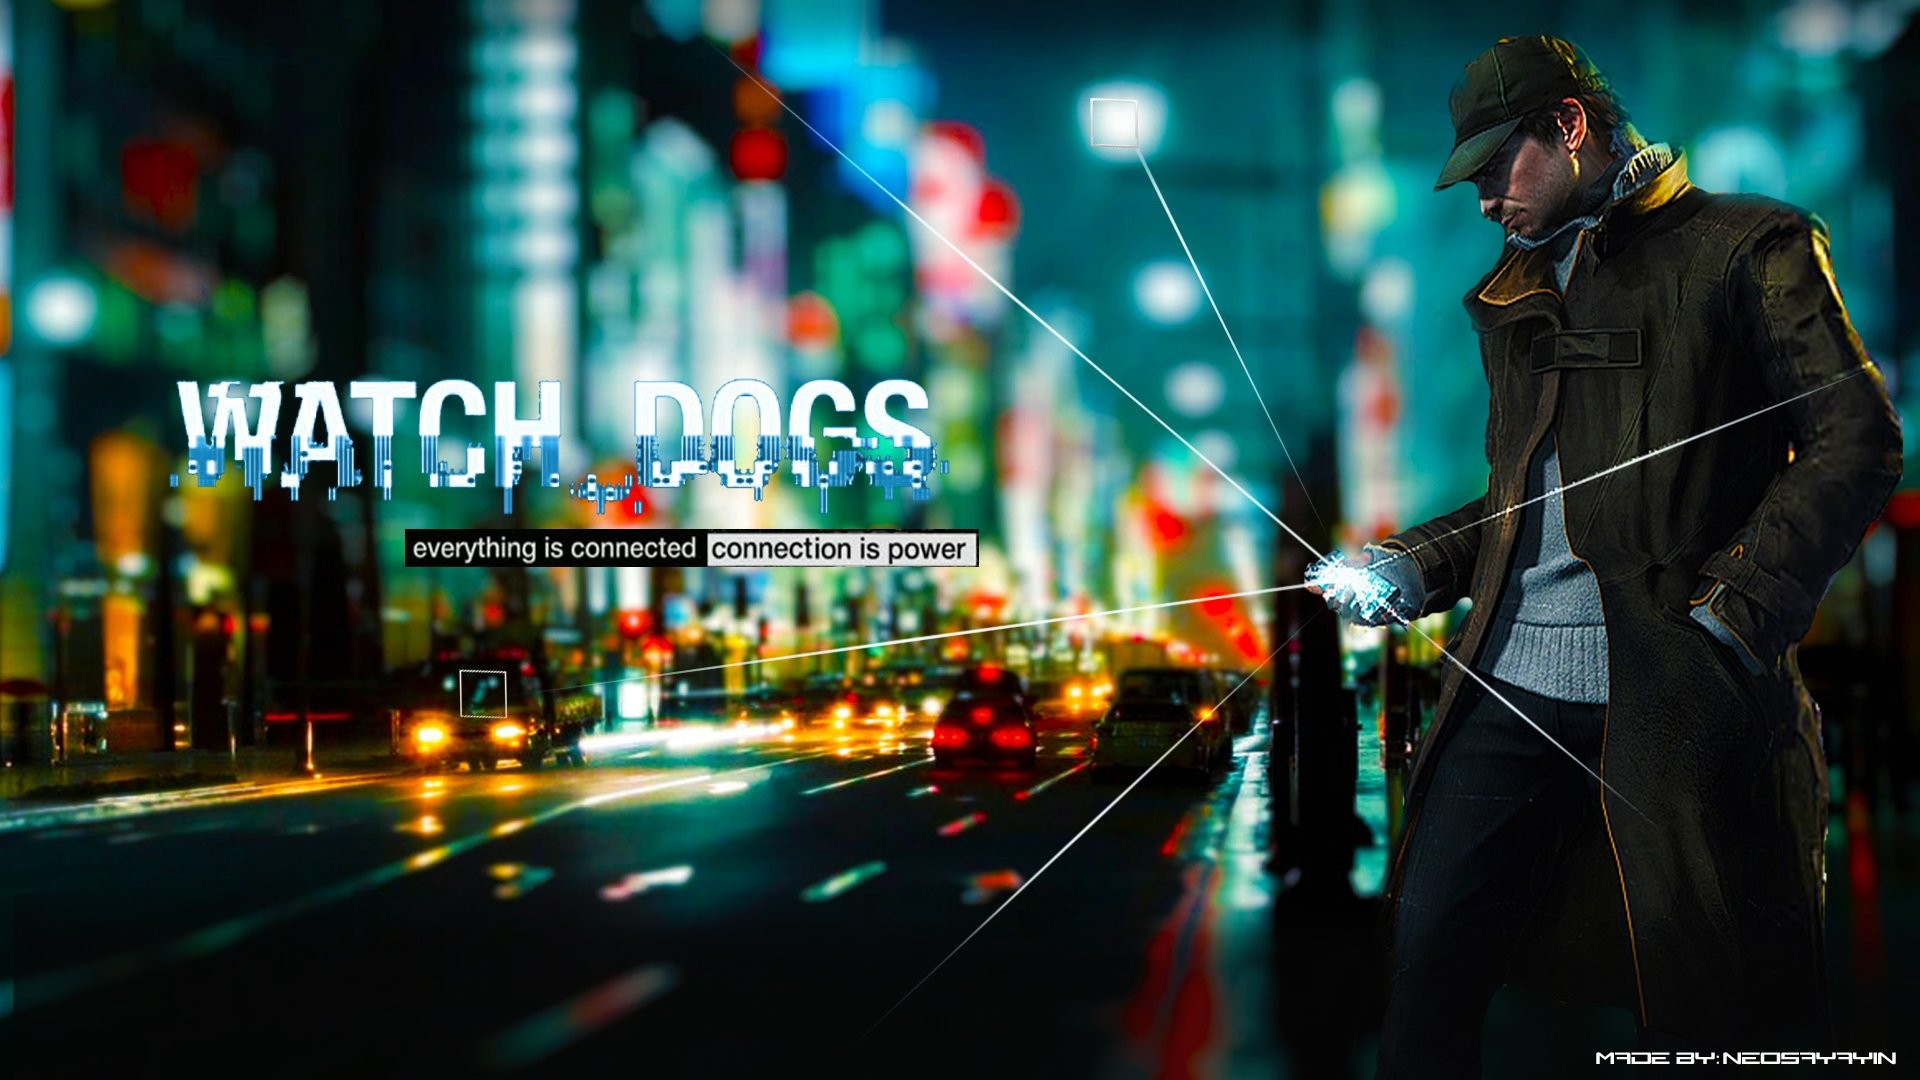 HD Wallpaper   Background ID:296376. Video Game Watch Dogs